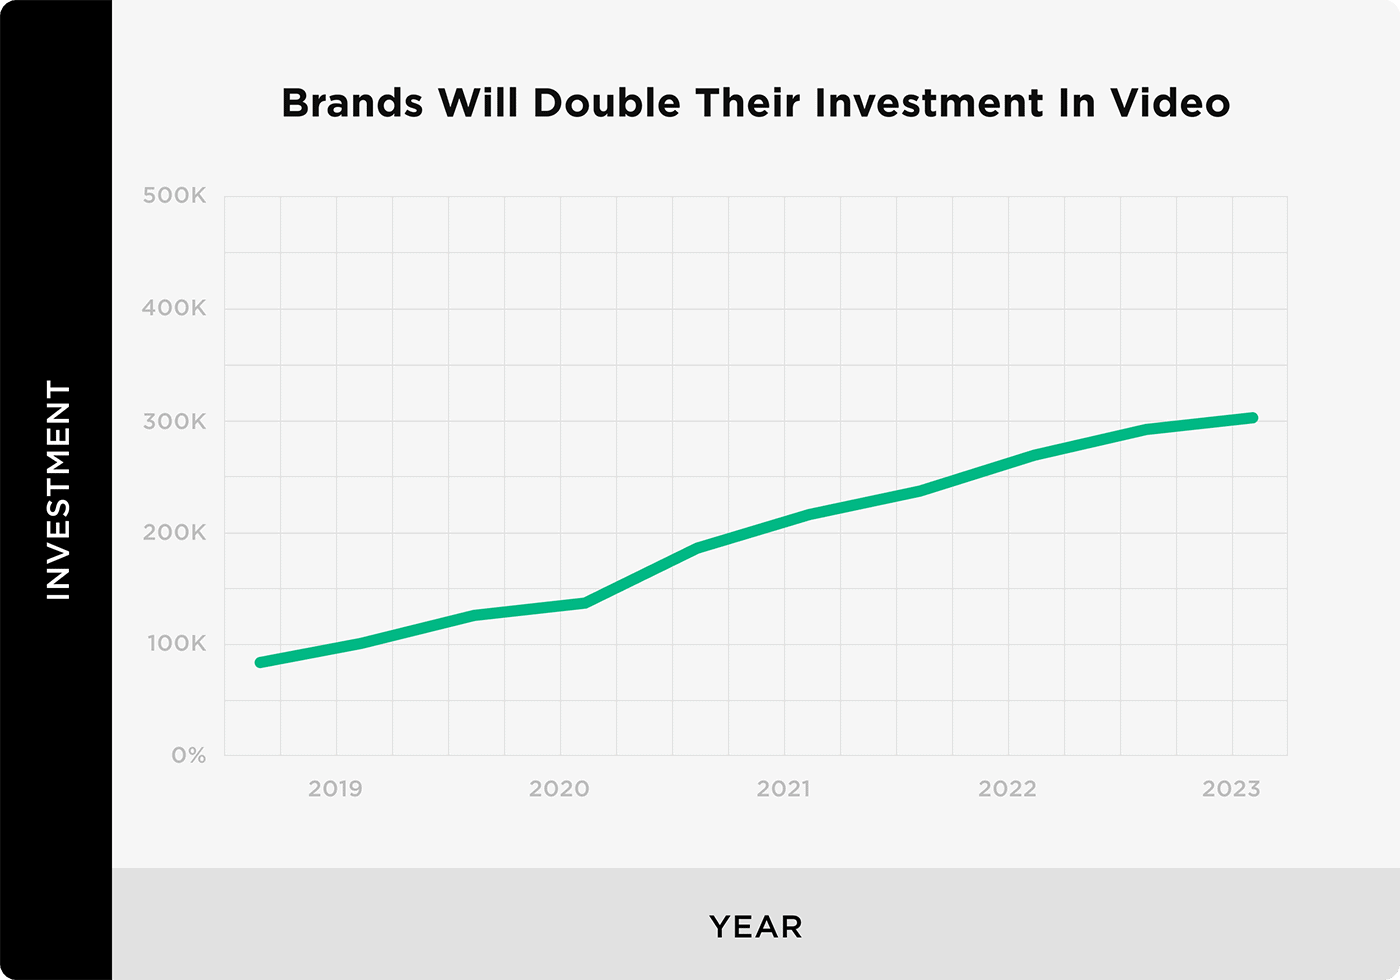 Brands will double their investment in video